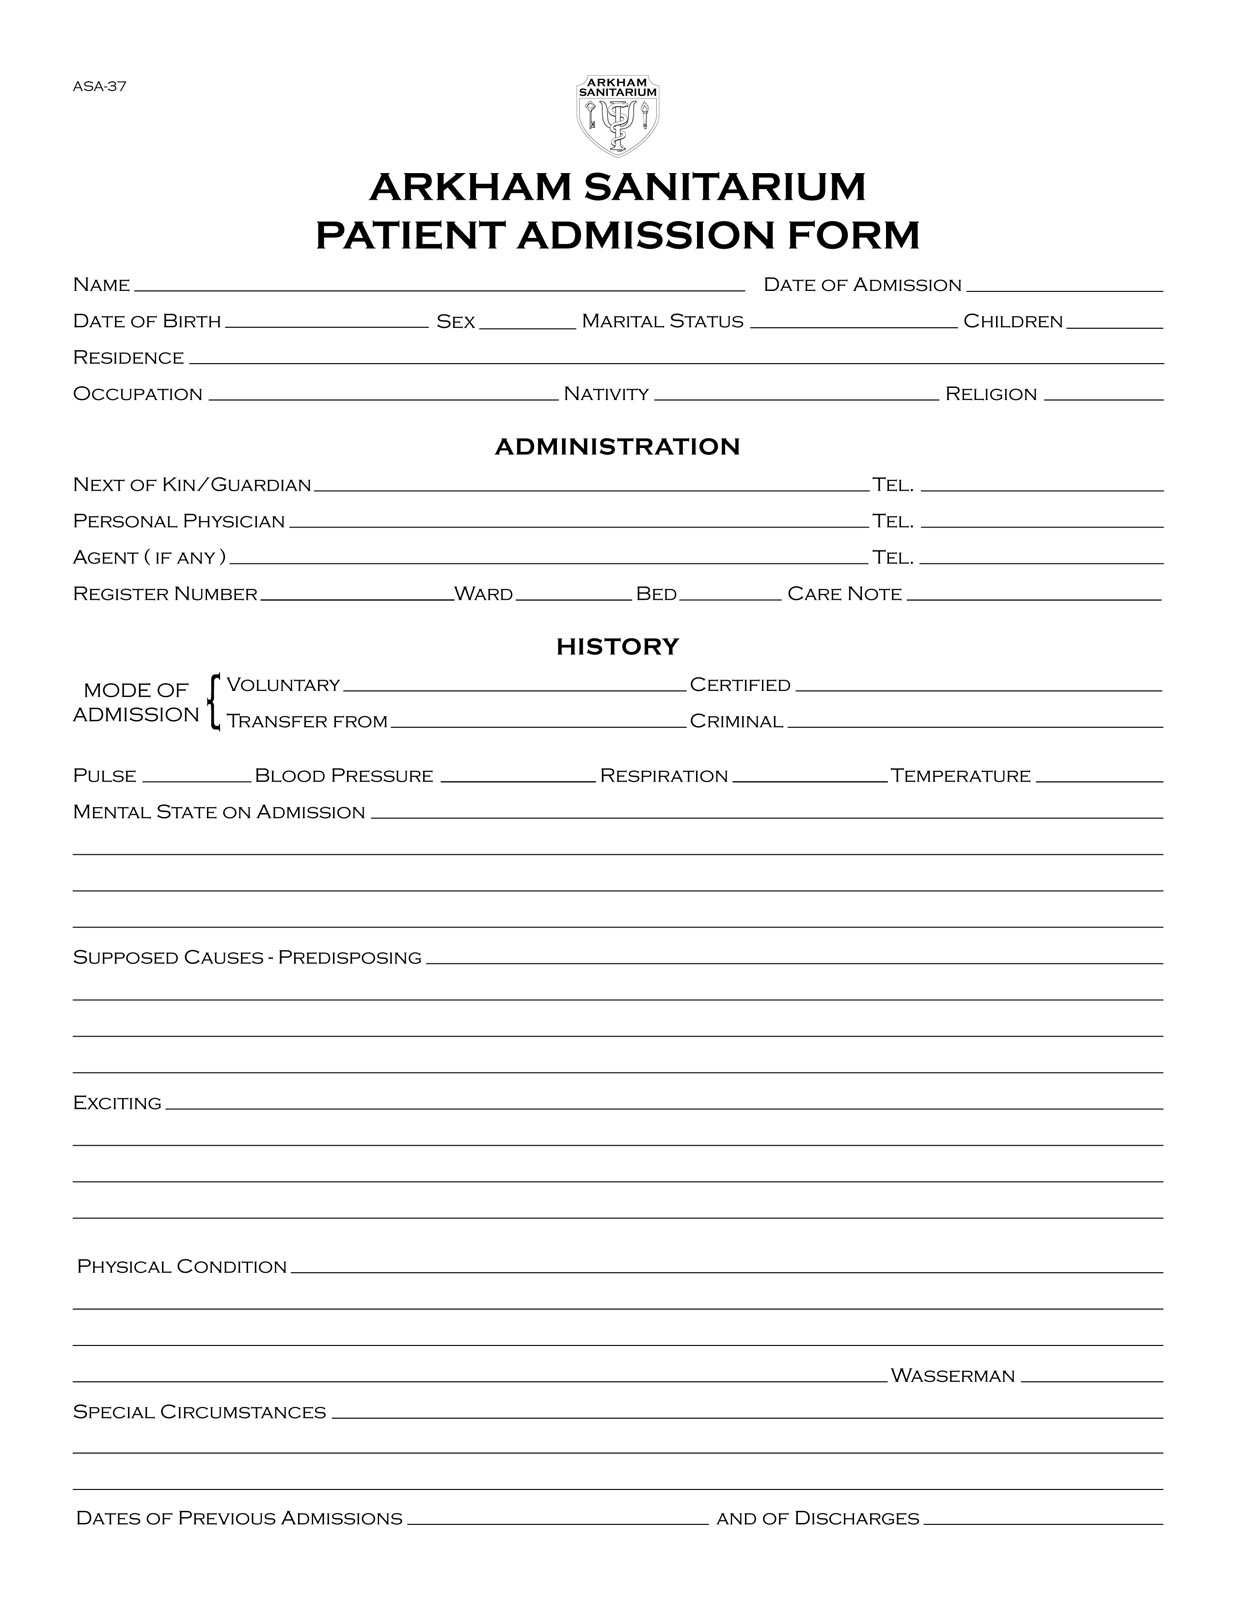 next of kin form template - propnomicon arkham sanitarium patient admission form